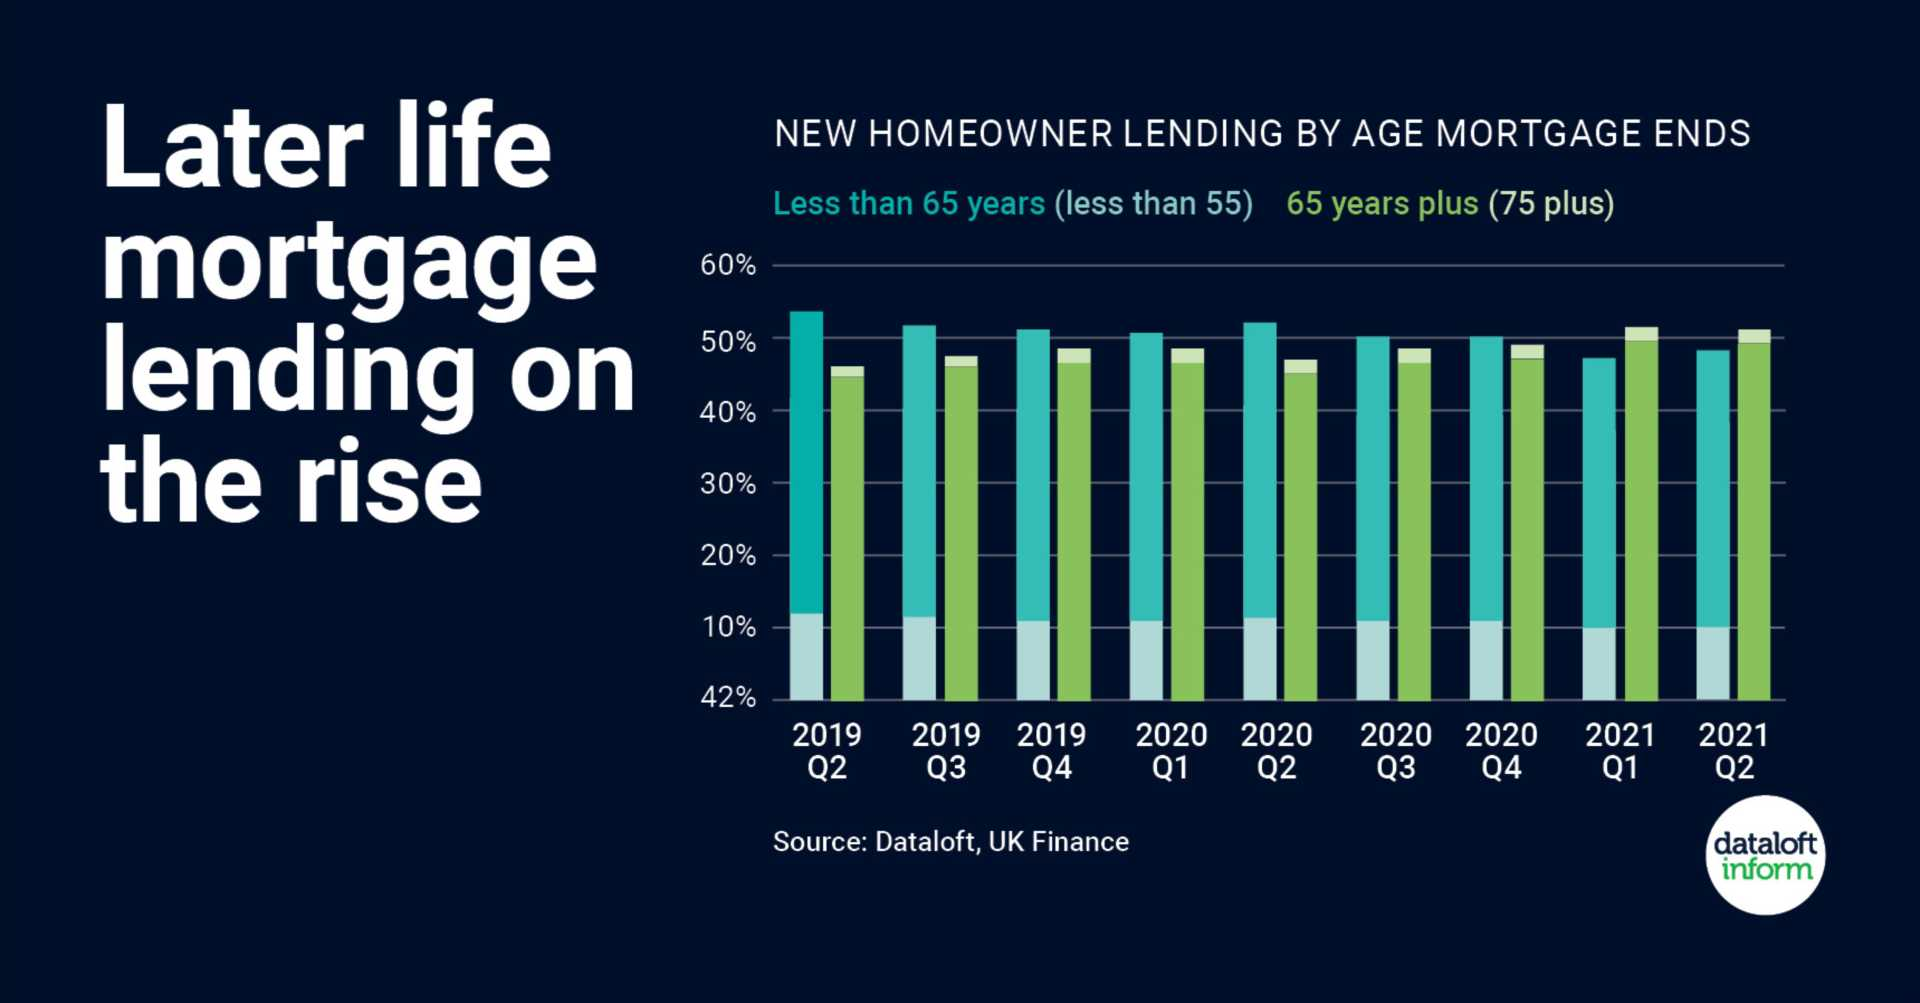 Later life mortgages on the rise